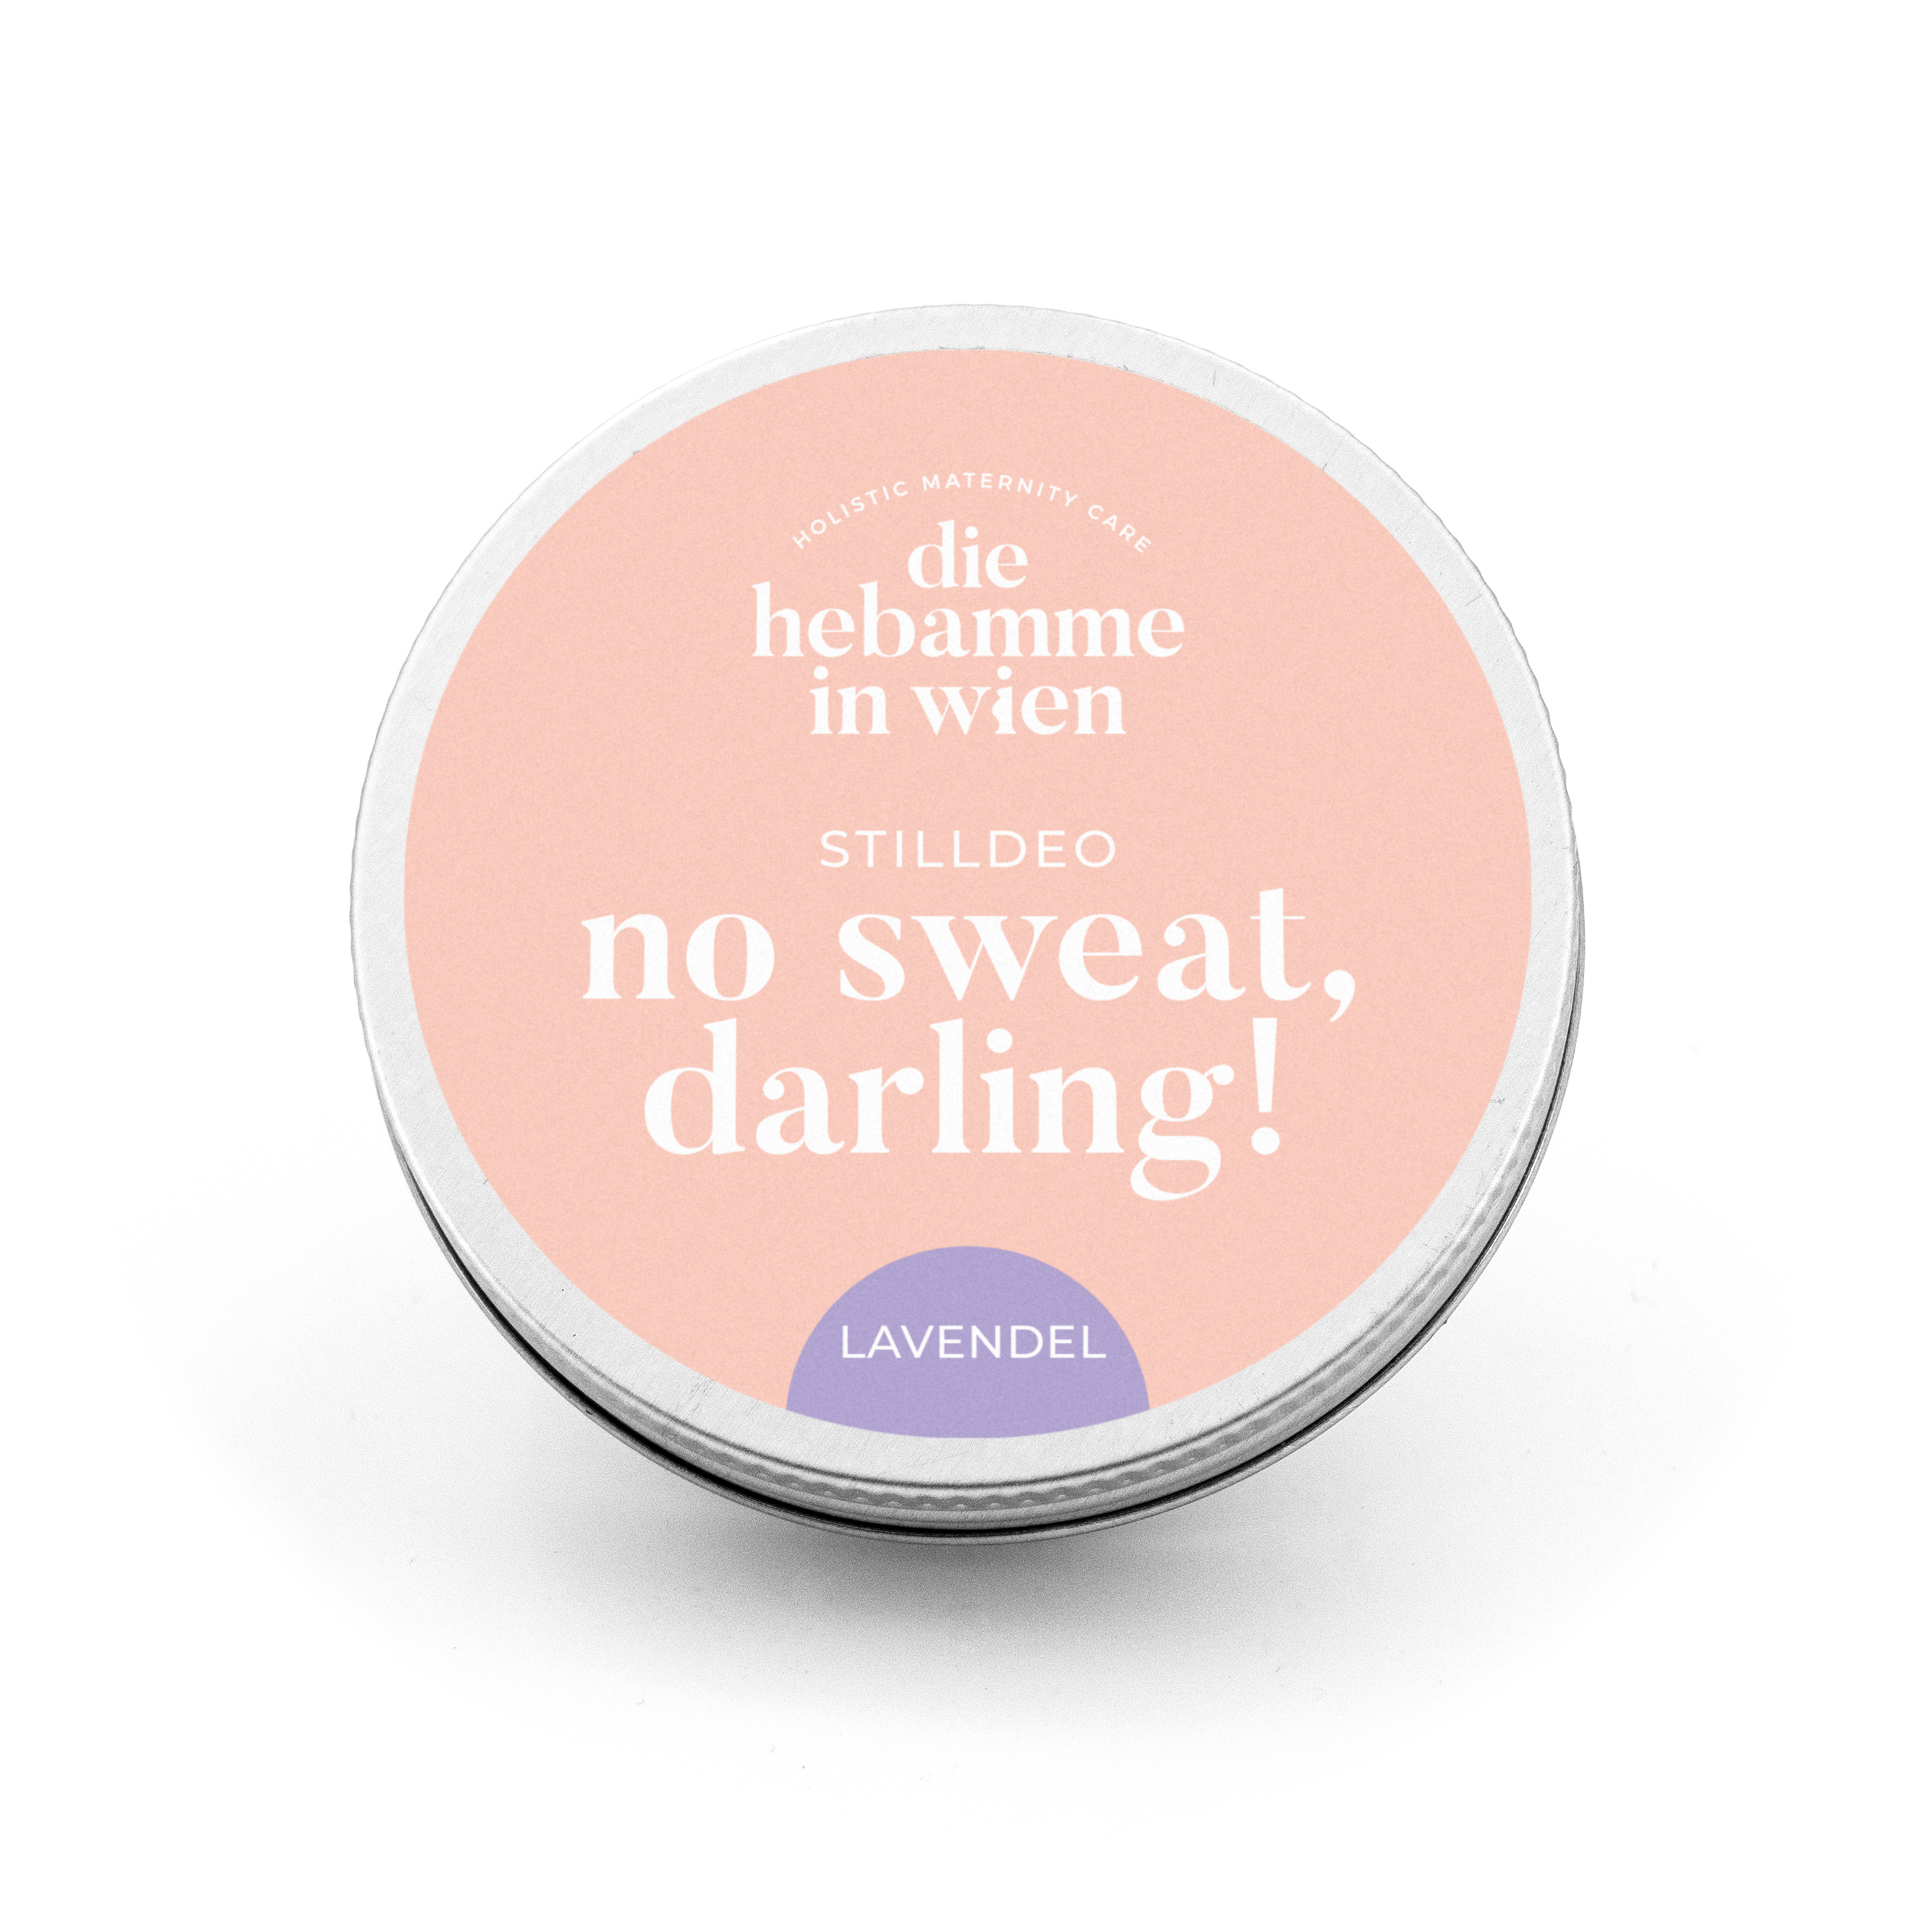 Stilldeo - Lavendel - no sweat, darling! - Deo Pure - die Hebamme in Wien